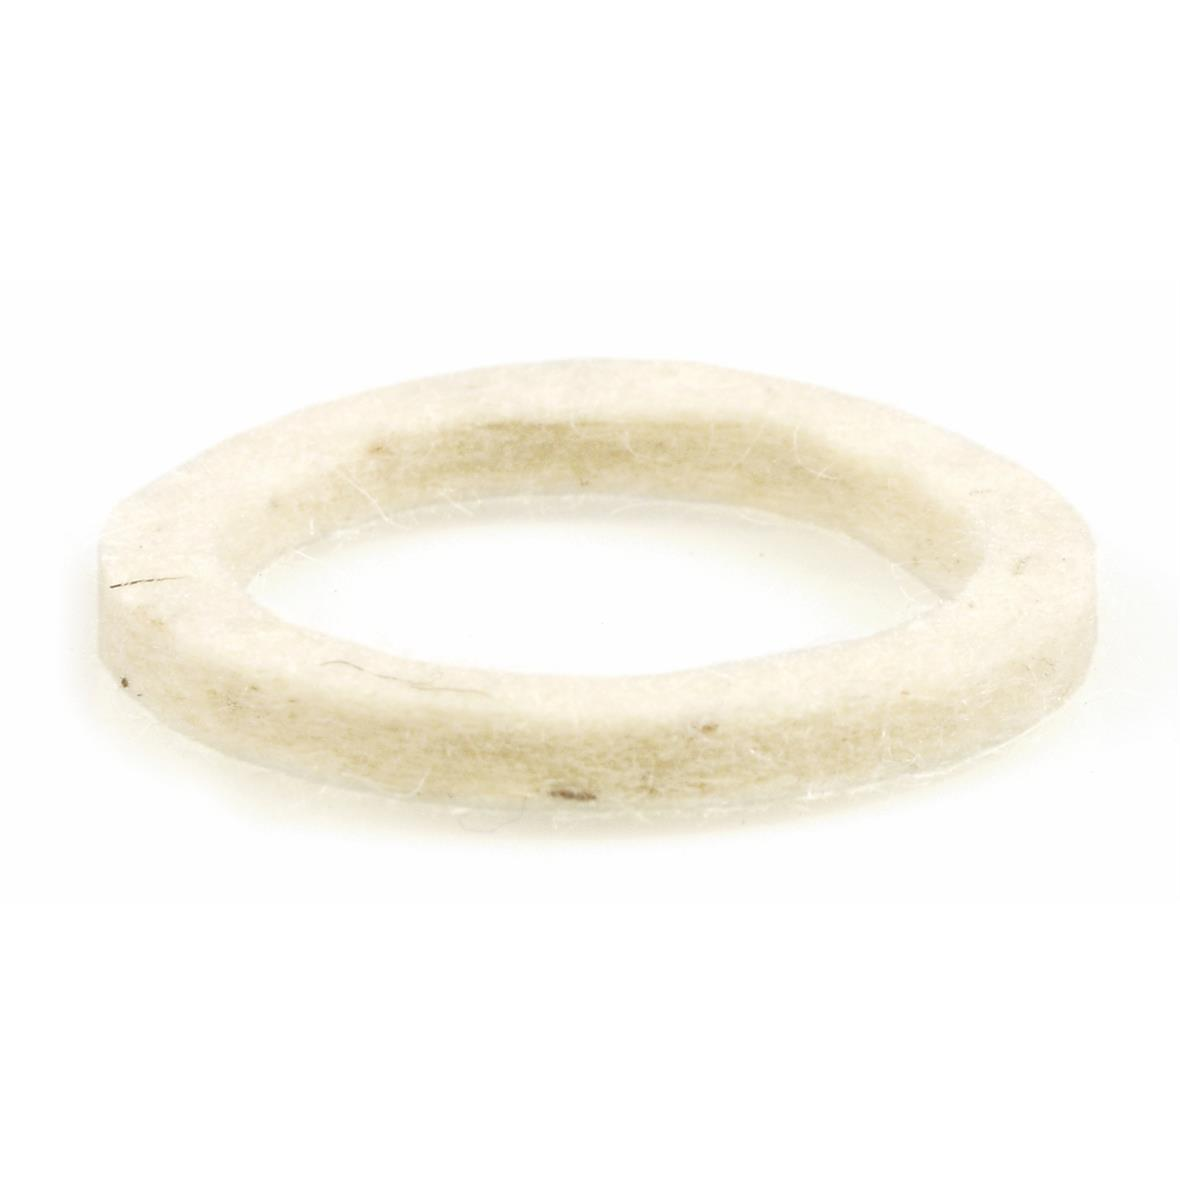 Product Image for 'Sealing Ring for SHB 16.10-16.16 manifold bushTitle'